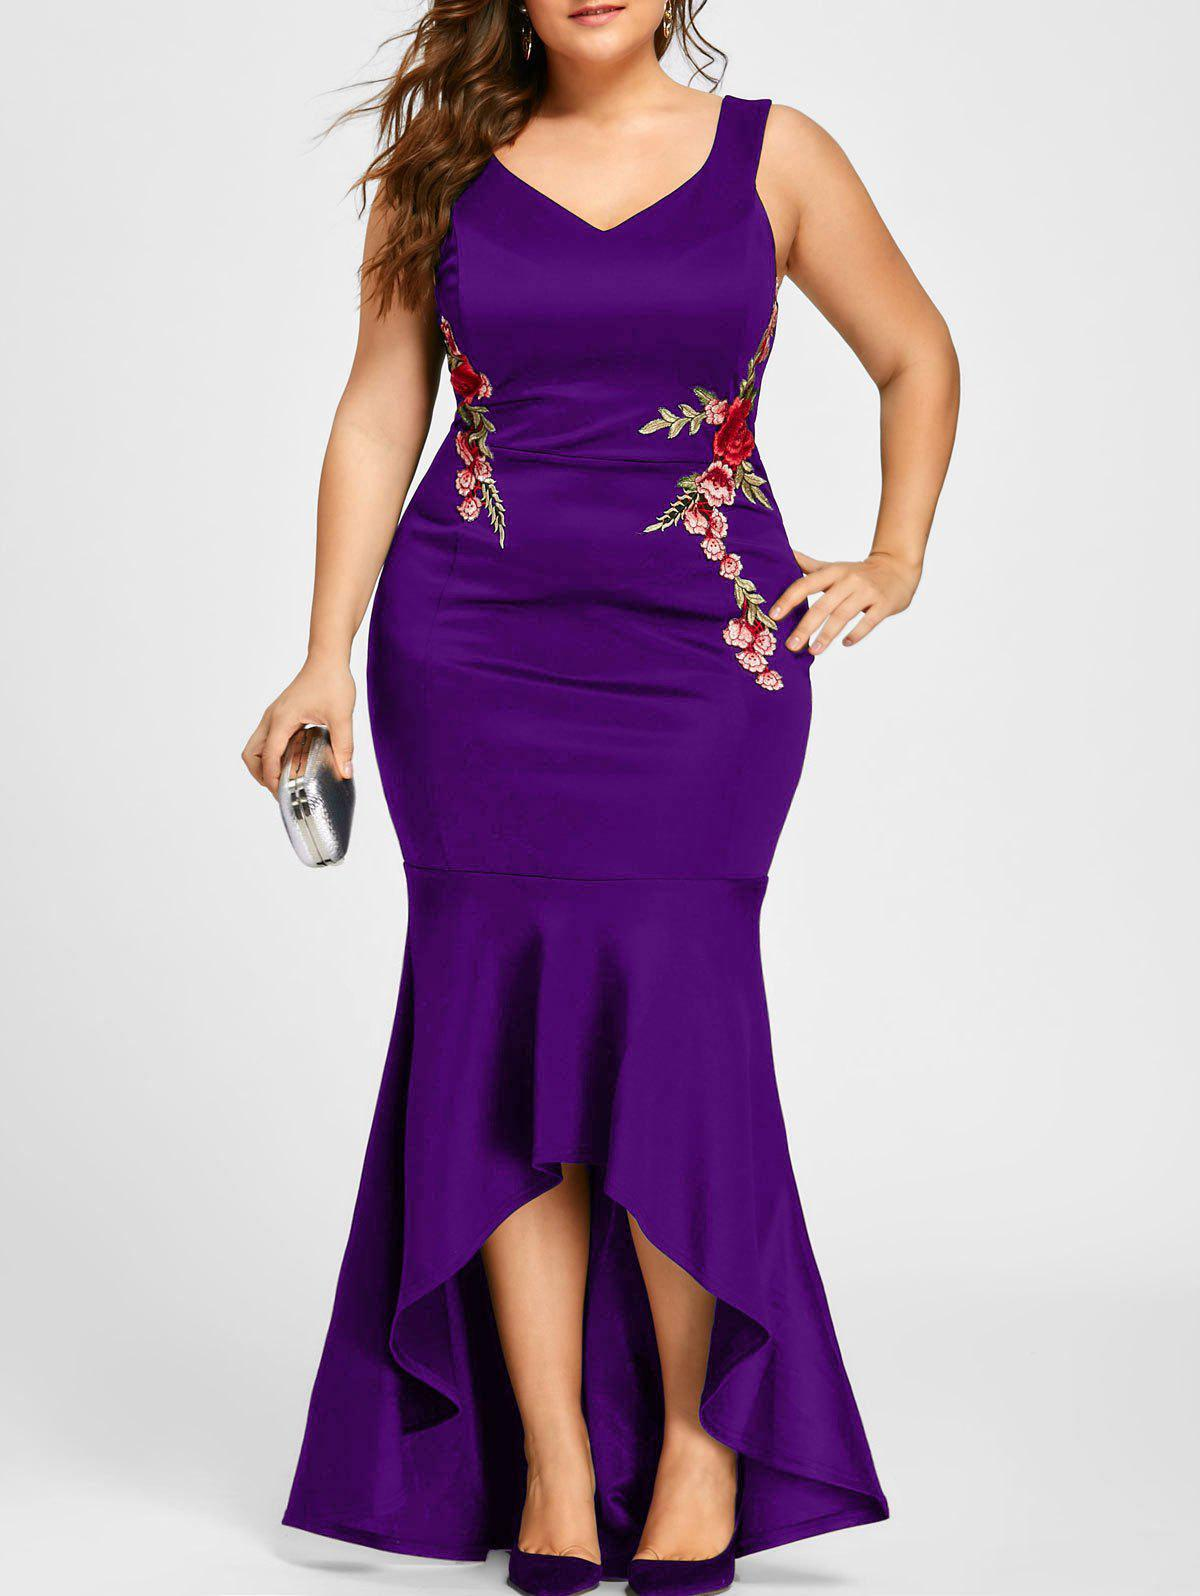 Plus Size Sleeveless Party Mermaid Engagement DressWOMEN<br><br>Size: 3XL; Color: PURPLE; Style: Brief; Material: Polyester,Spandex; Silhouette: Trumpet/Mermaid; Dresses Length: Floor-Length; Neckline: V-Neck; Sleeve Length: Sleeveless; Embellishment: Appliques,Embroidery; Pattern Type: Floral; With Belt: No; Season: Fall,Spring,Summer; Weight: 0.5500kg; Package Contents: 1 x Dress;